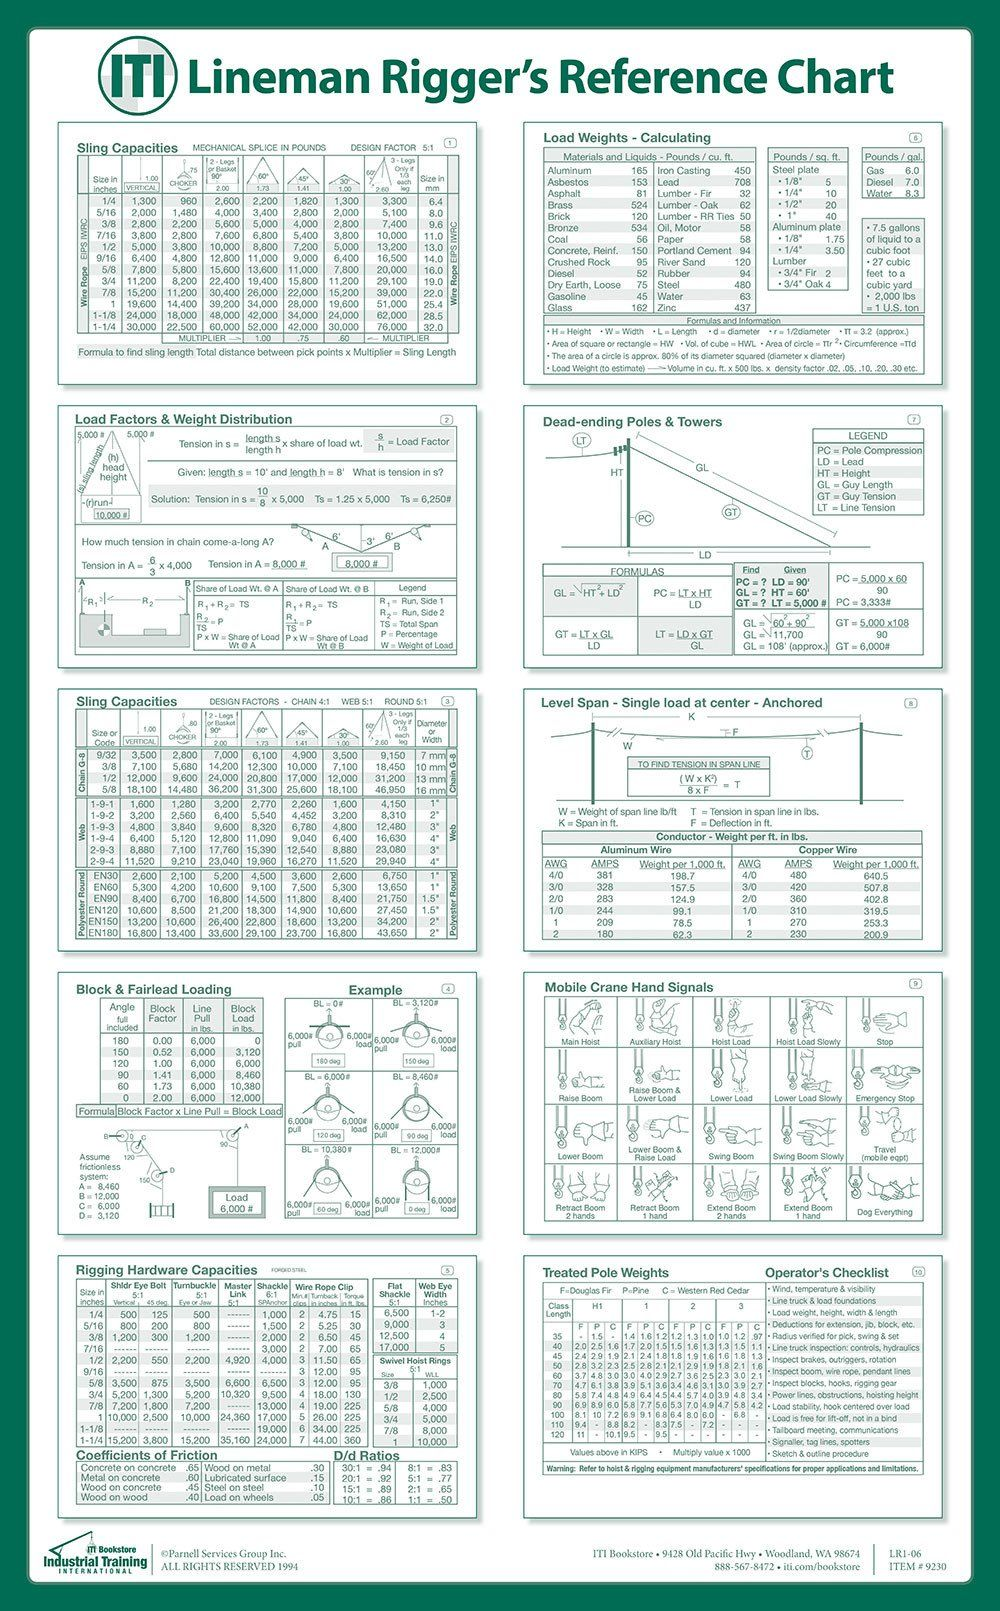 Lineman rigger reference chart poster rigging posters decals lineman rigger reference chart poster fandeluxe Images